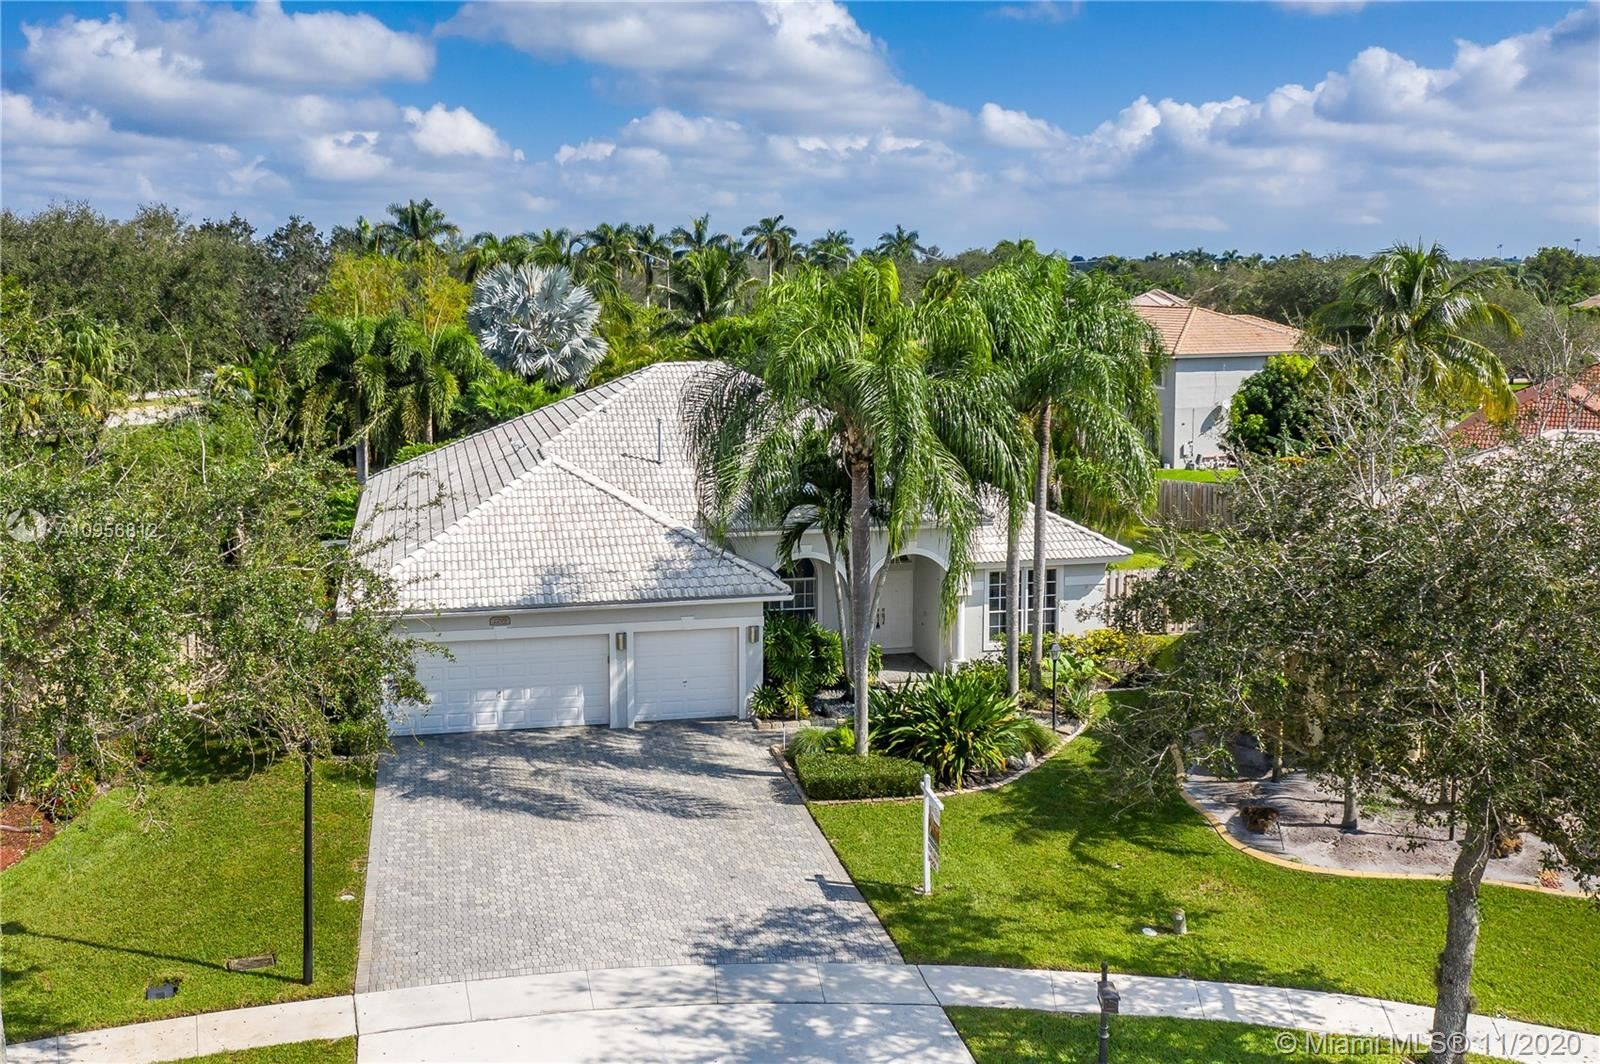 Photo of 2299 NW 128th Ave, Pembroke Pines, FL 33028 (MLS # A10956812)